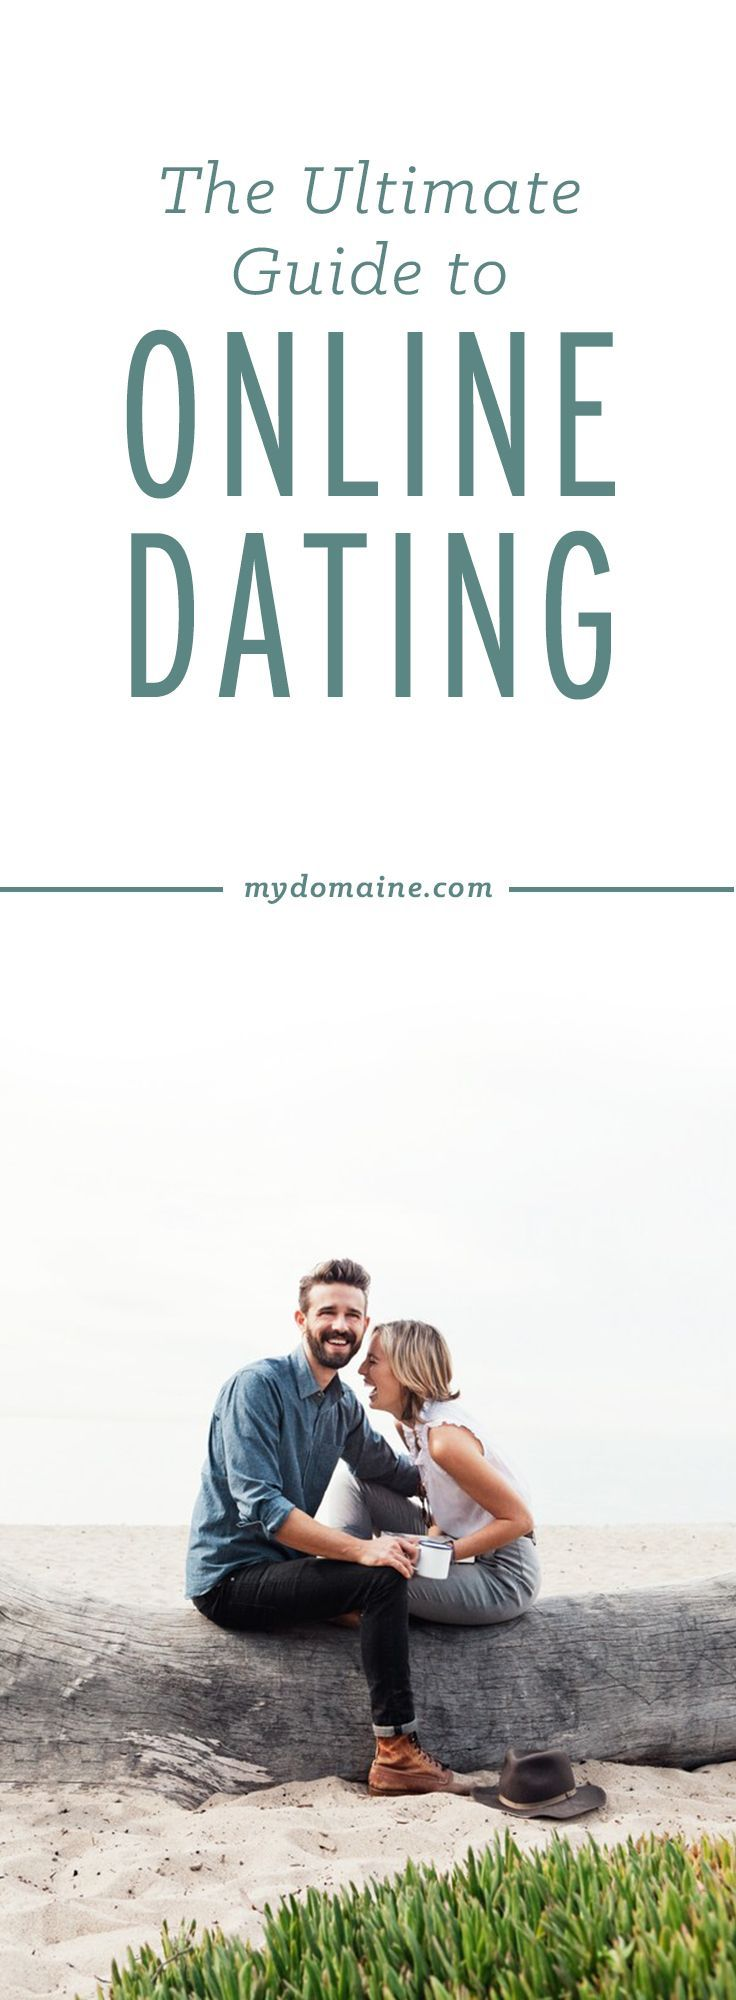 Improve online dating profile